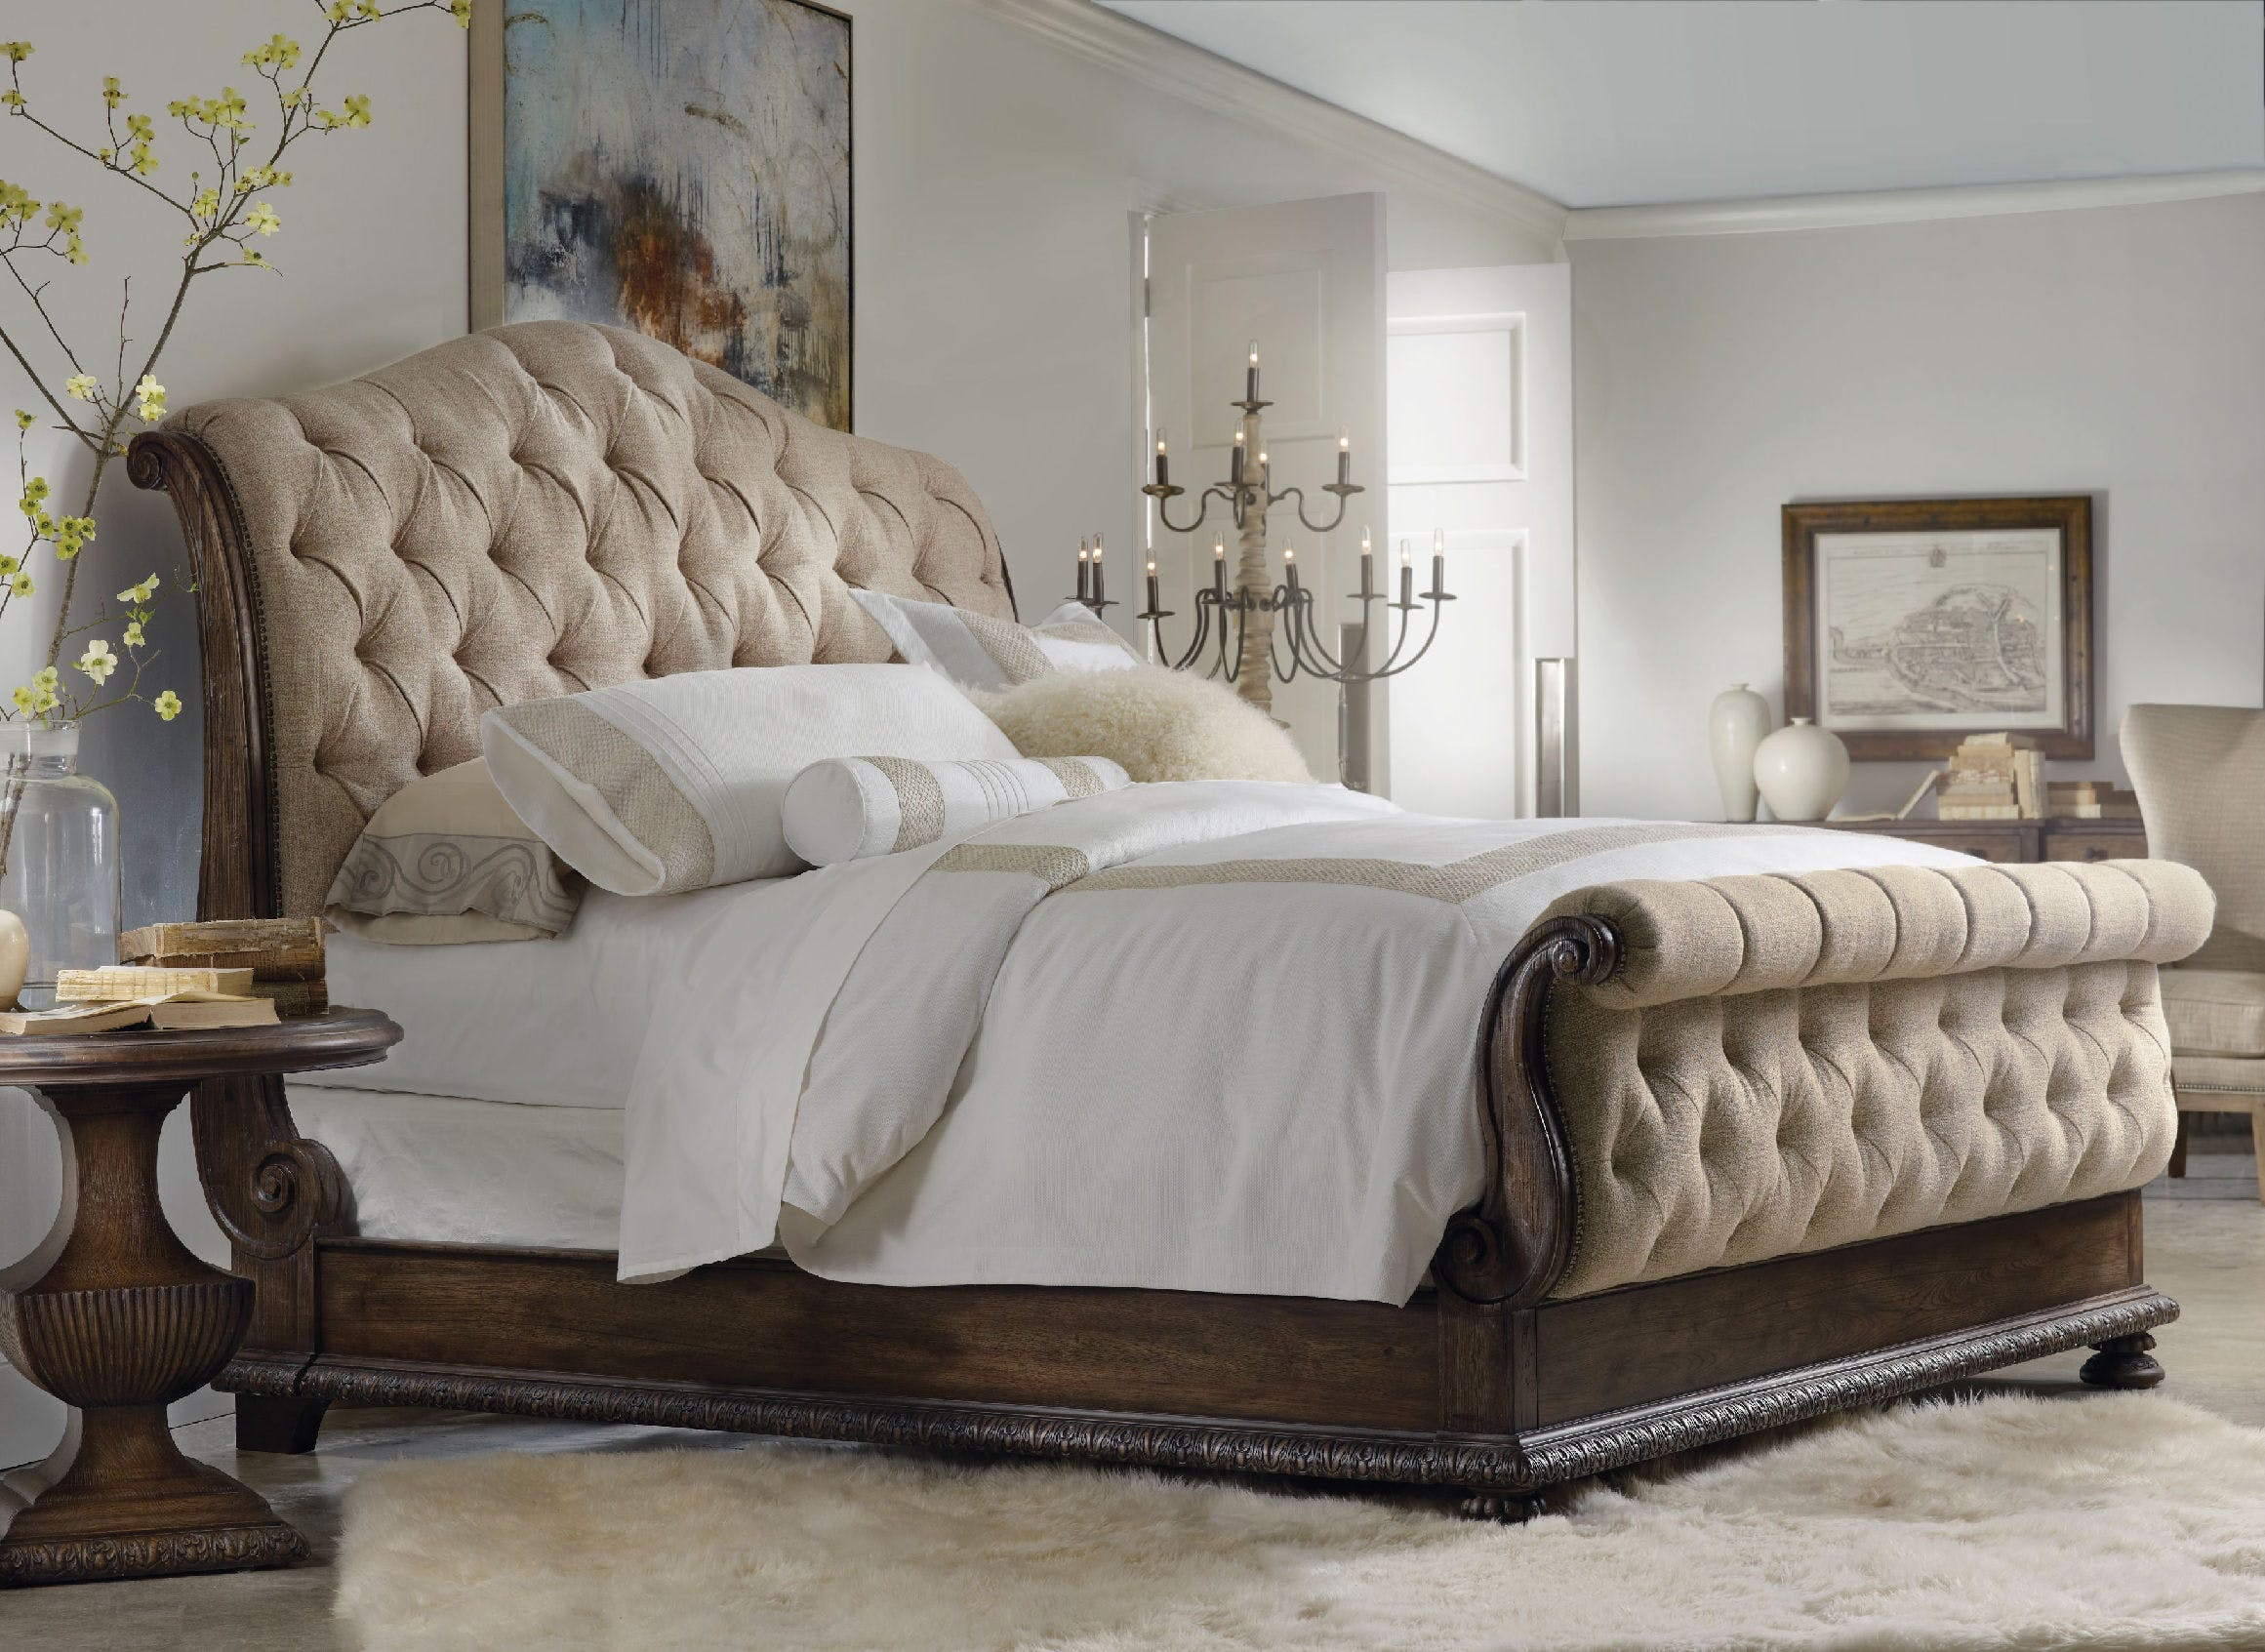 tufted bedroom furniture. Hooker Furniture Rhapsody Queen Tufted Bed 5070-90550 Bedroom O